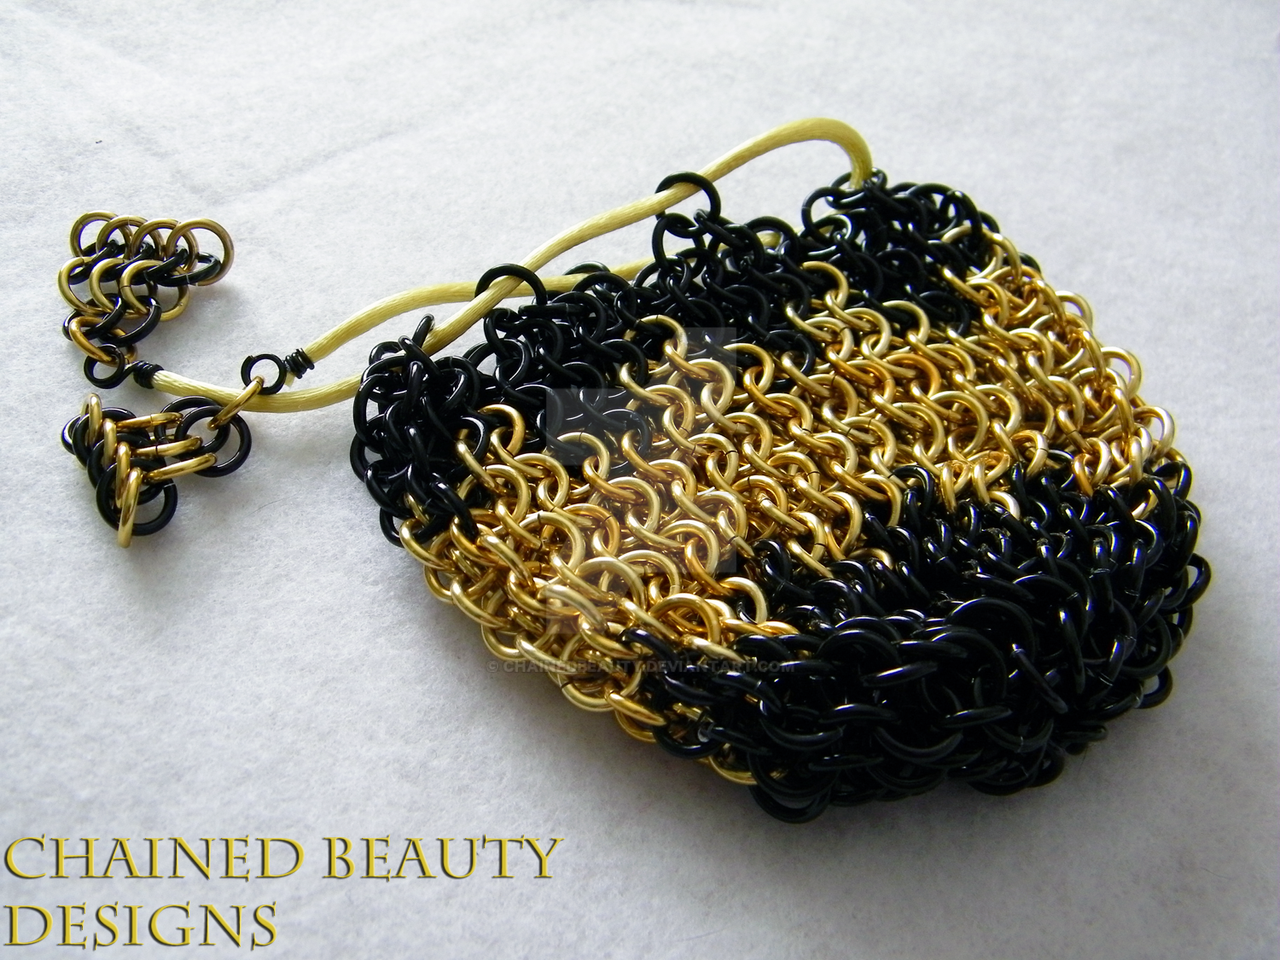 Black and Gold Chainmaille Bag by ChainedBeauty